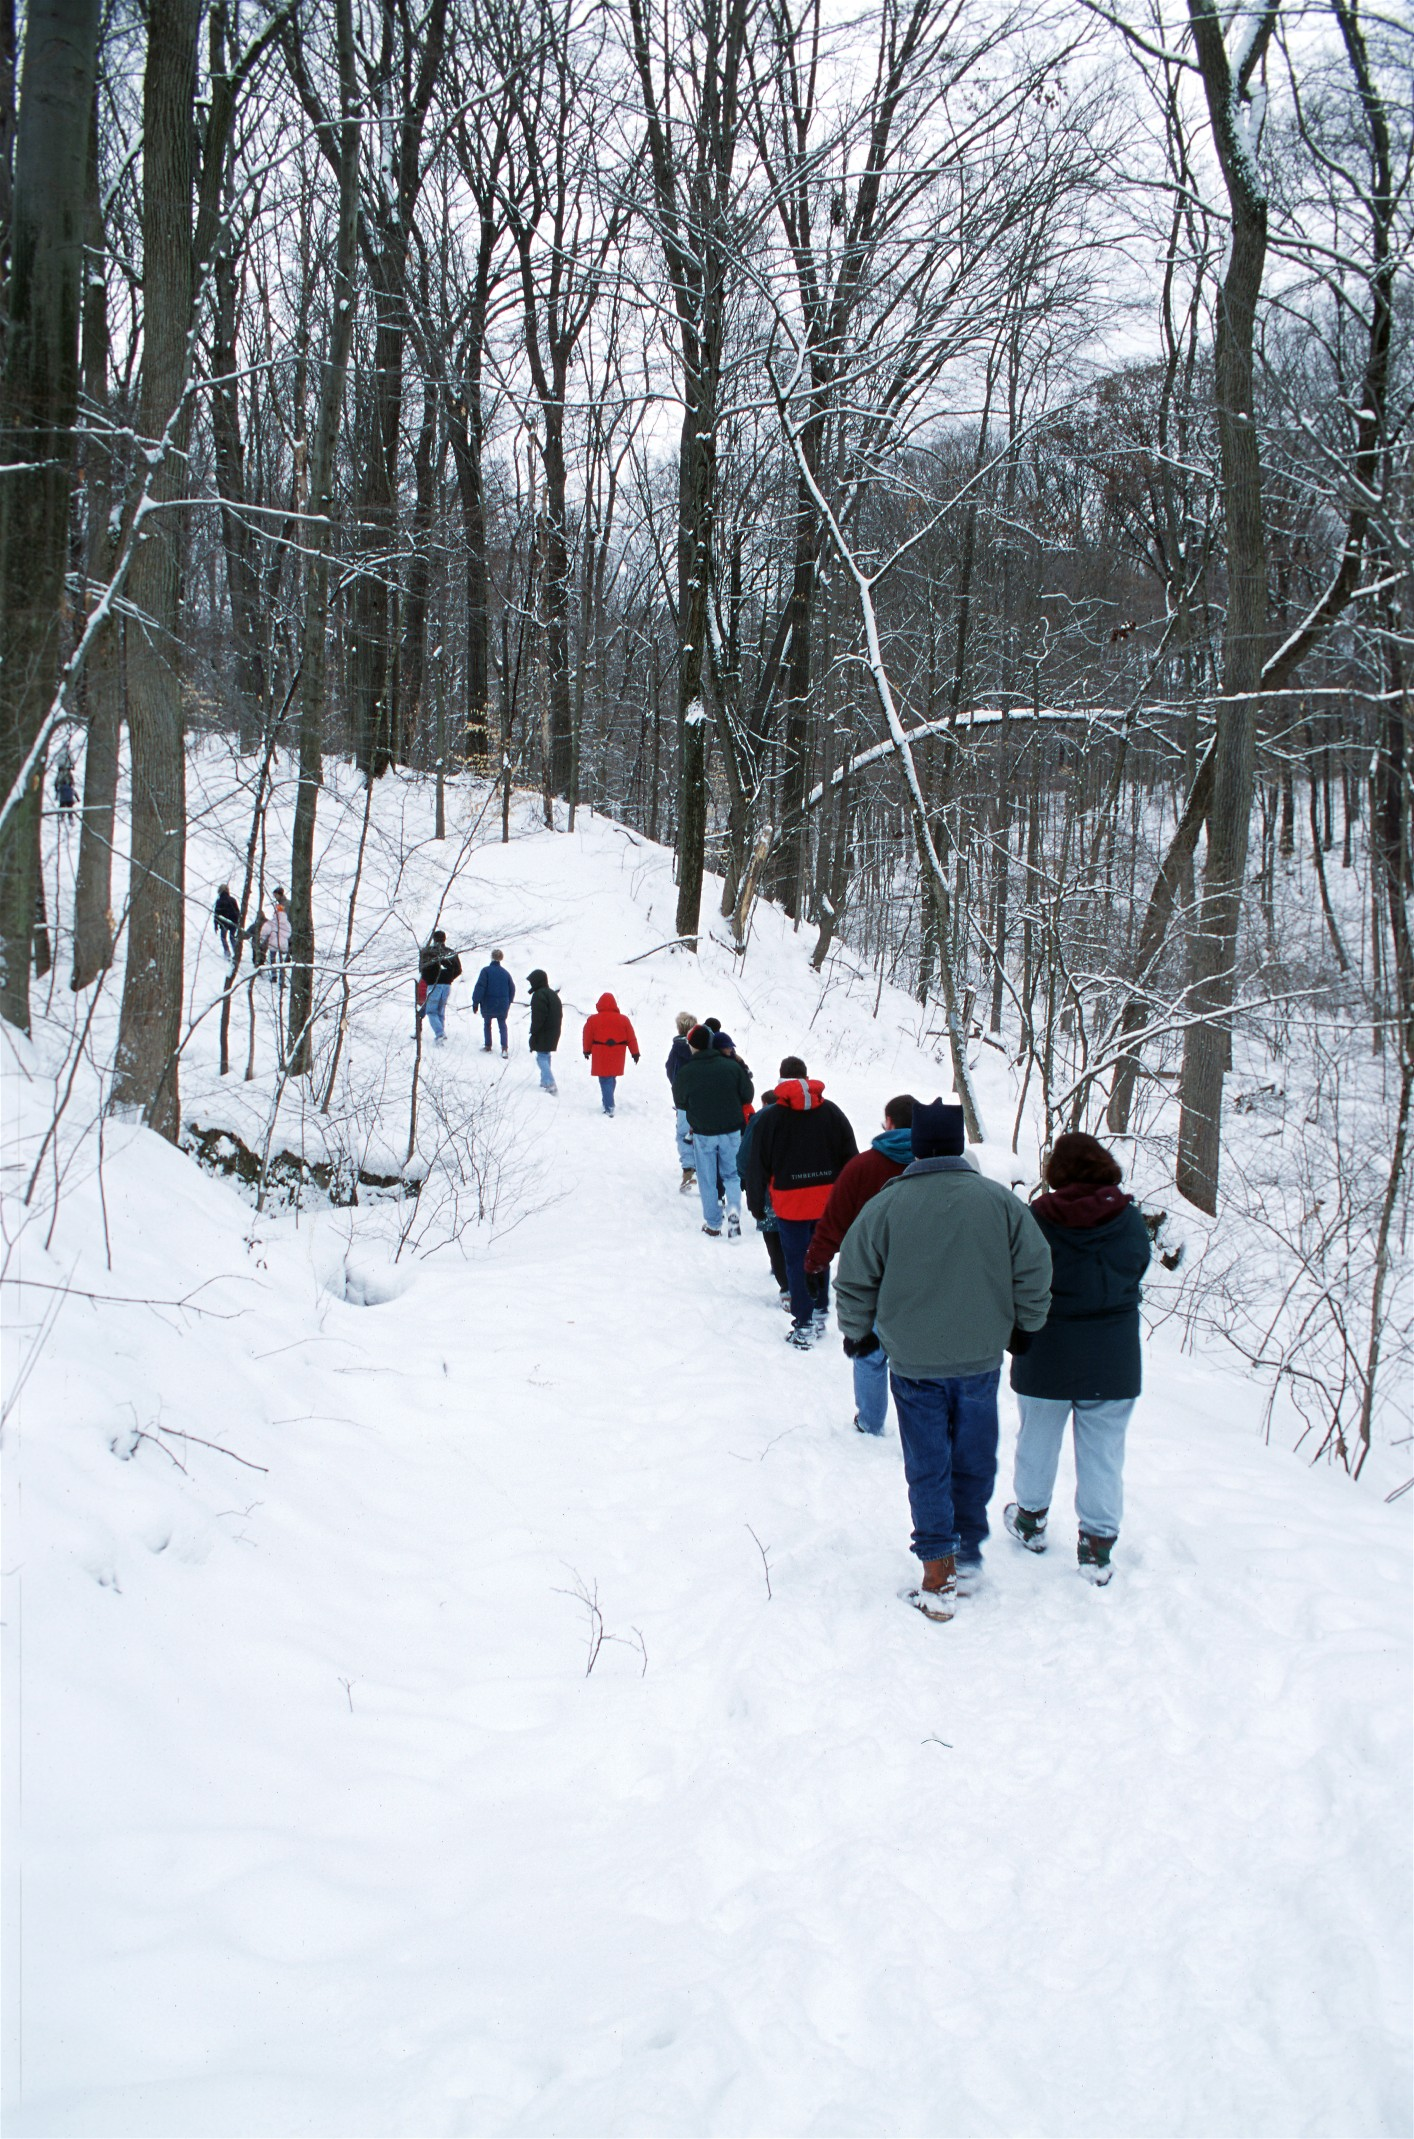 TAKE A COOL WINTER HIKE IN CLEVELAND METROPARKS